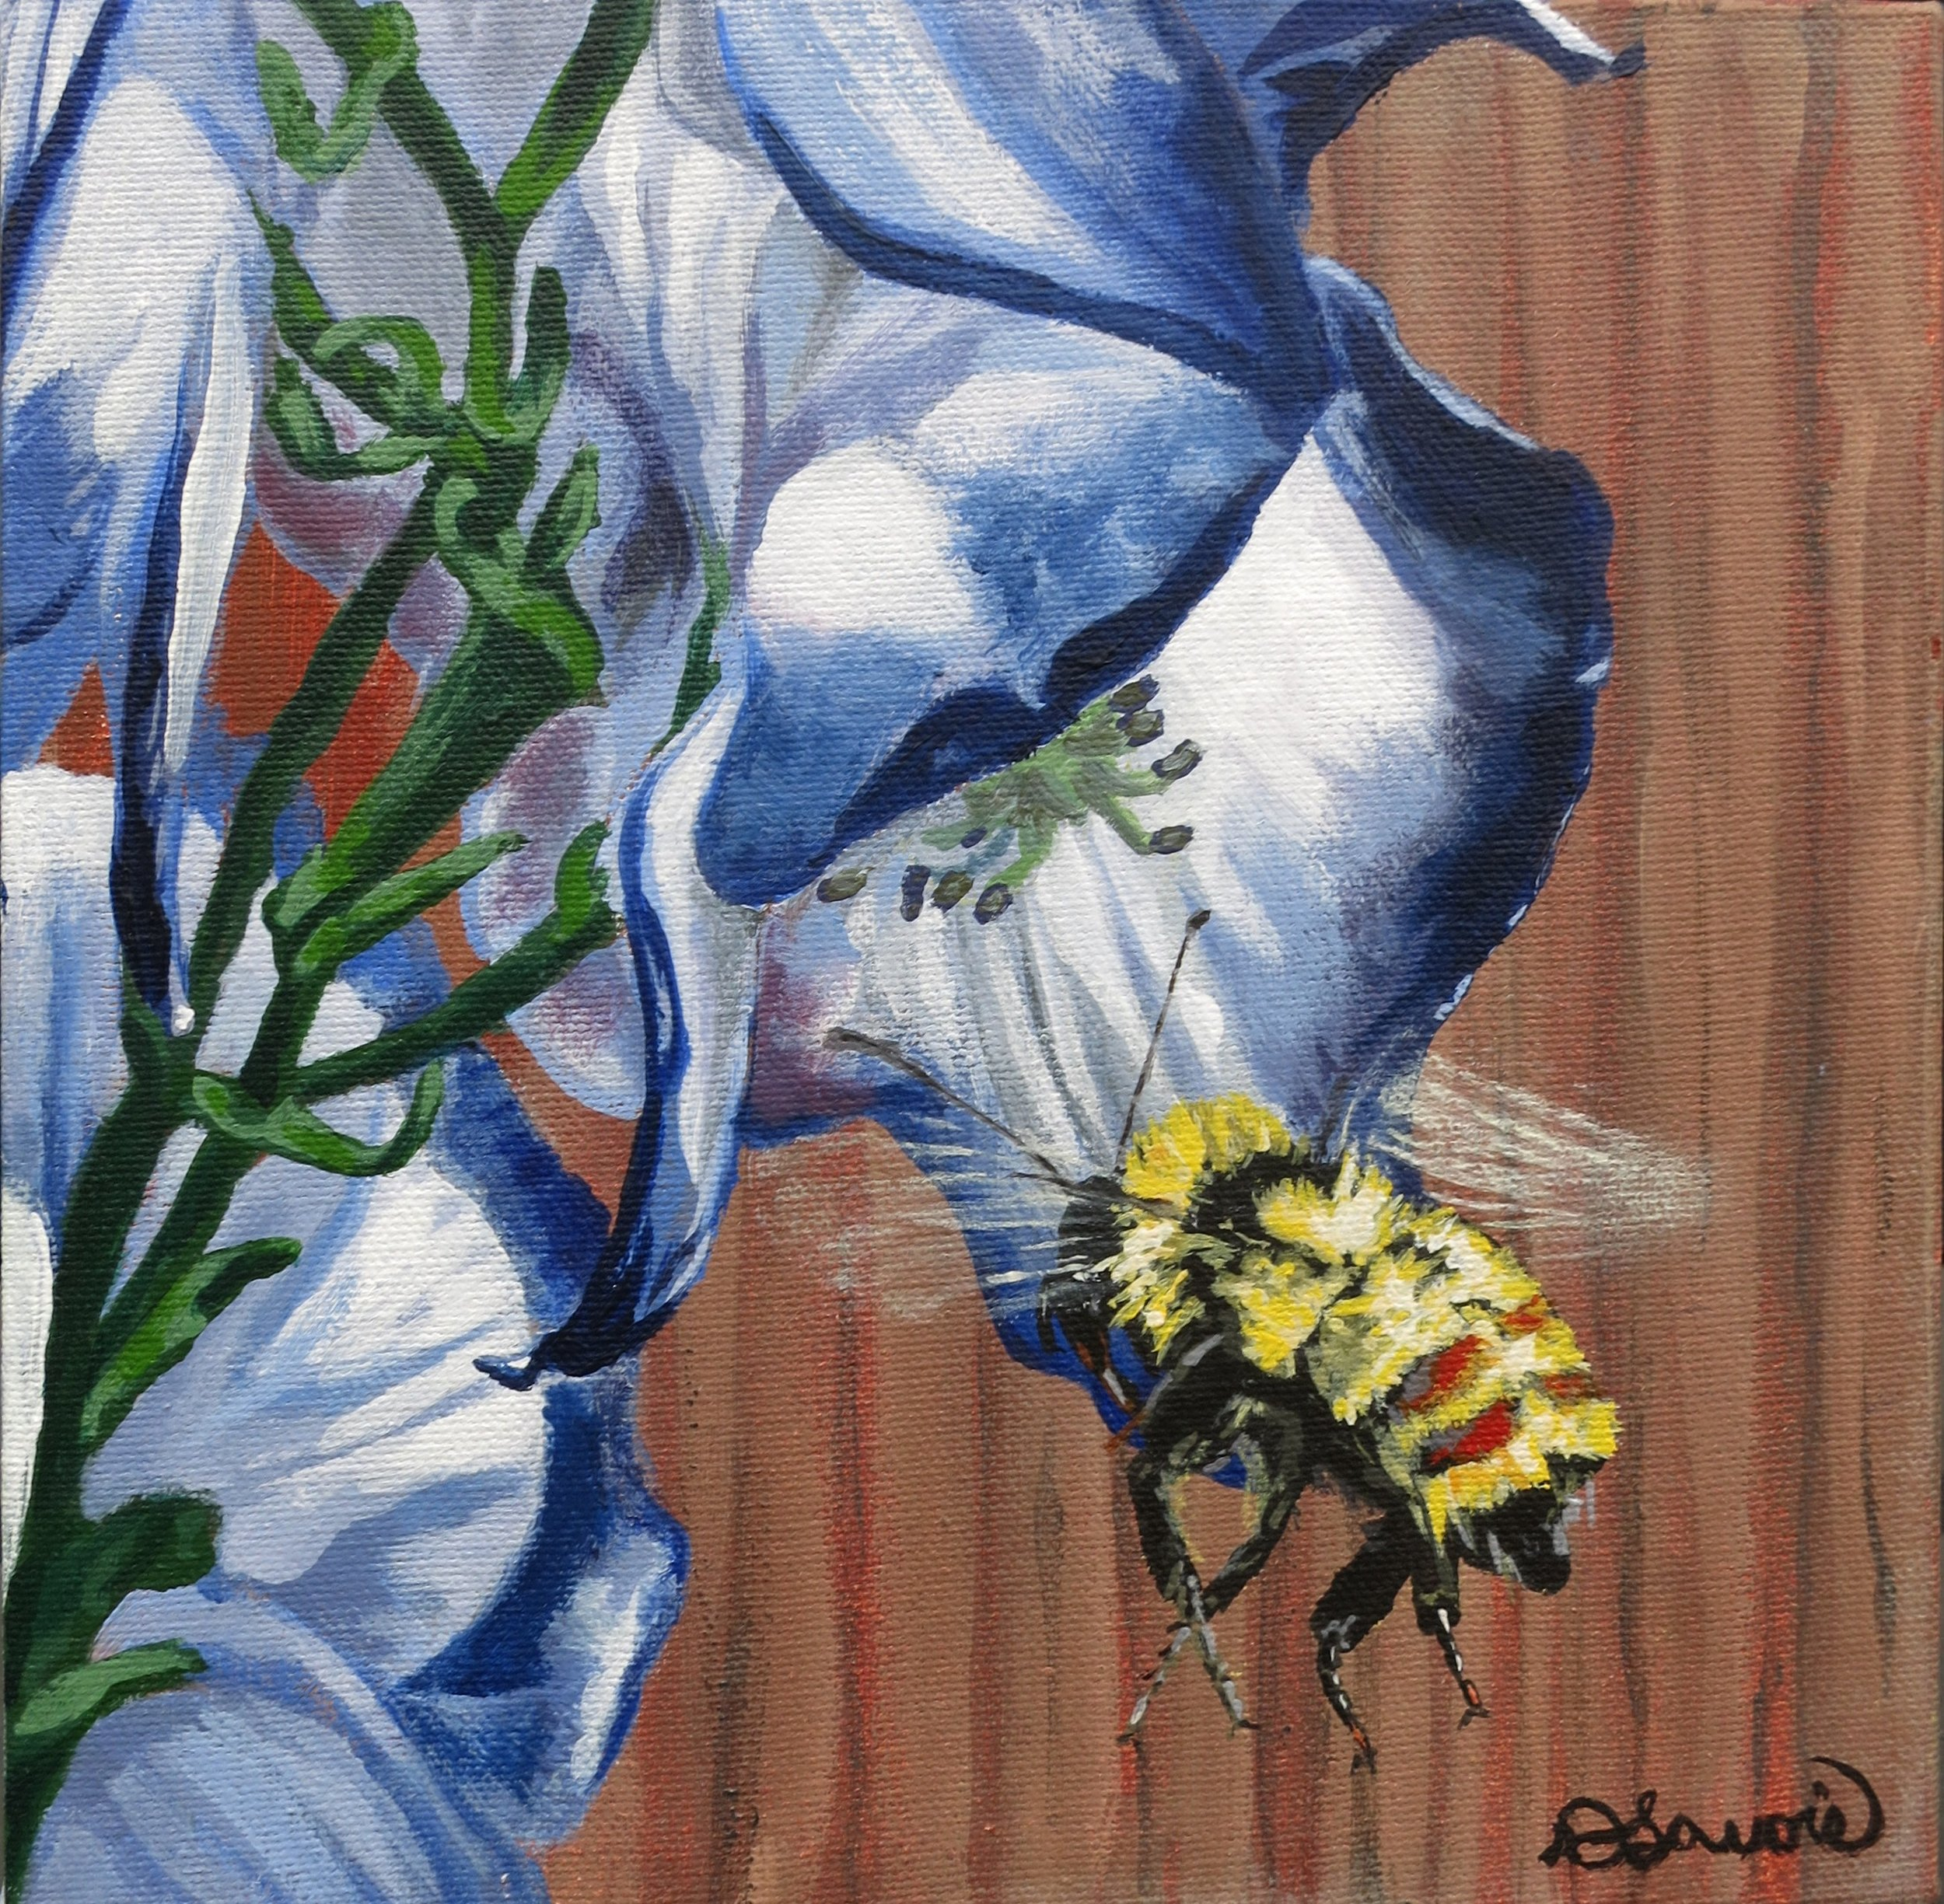 """Landing Gear        Acrylic on Canvas - 8"""" x 8""""     Both the original and limited edition prints are available.   It is marvelous watching bees make their way to a flower then do their quick acrobatic maneuvers to """"jump"""" inside!"""